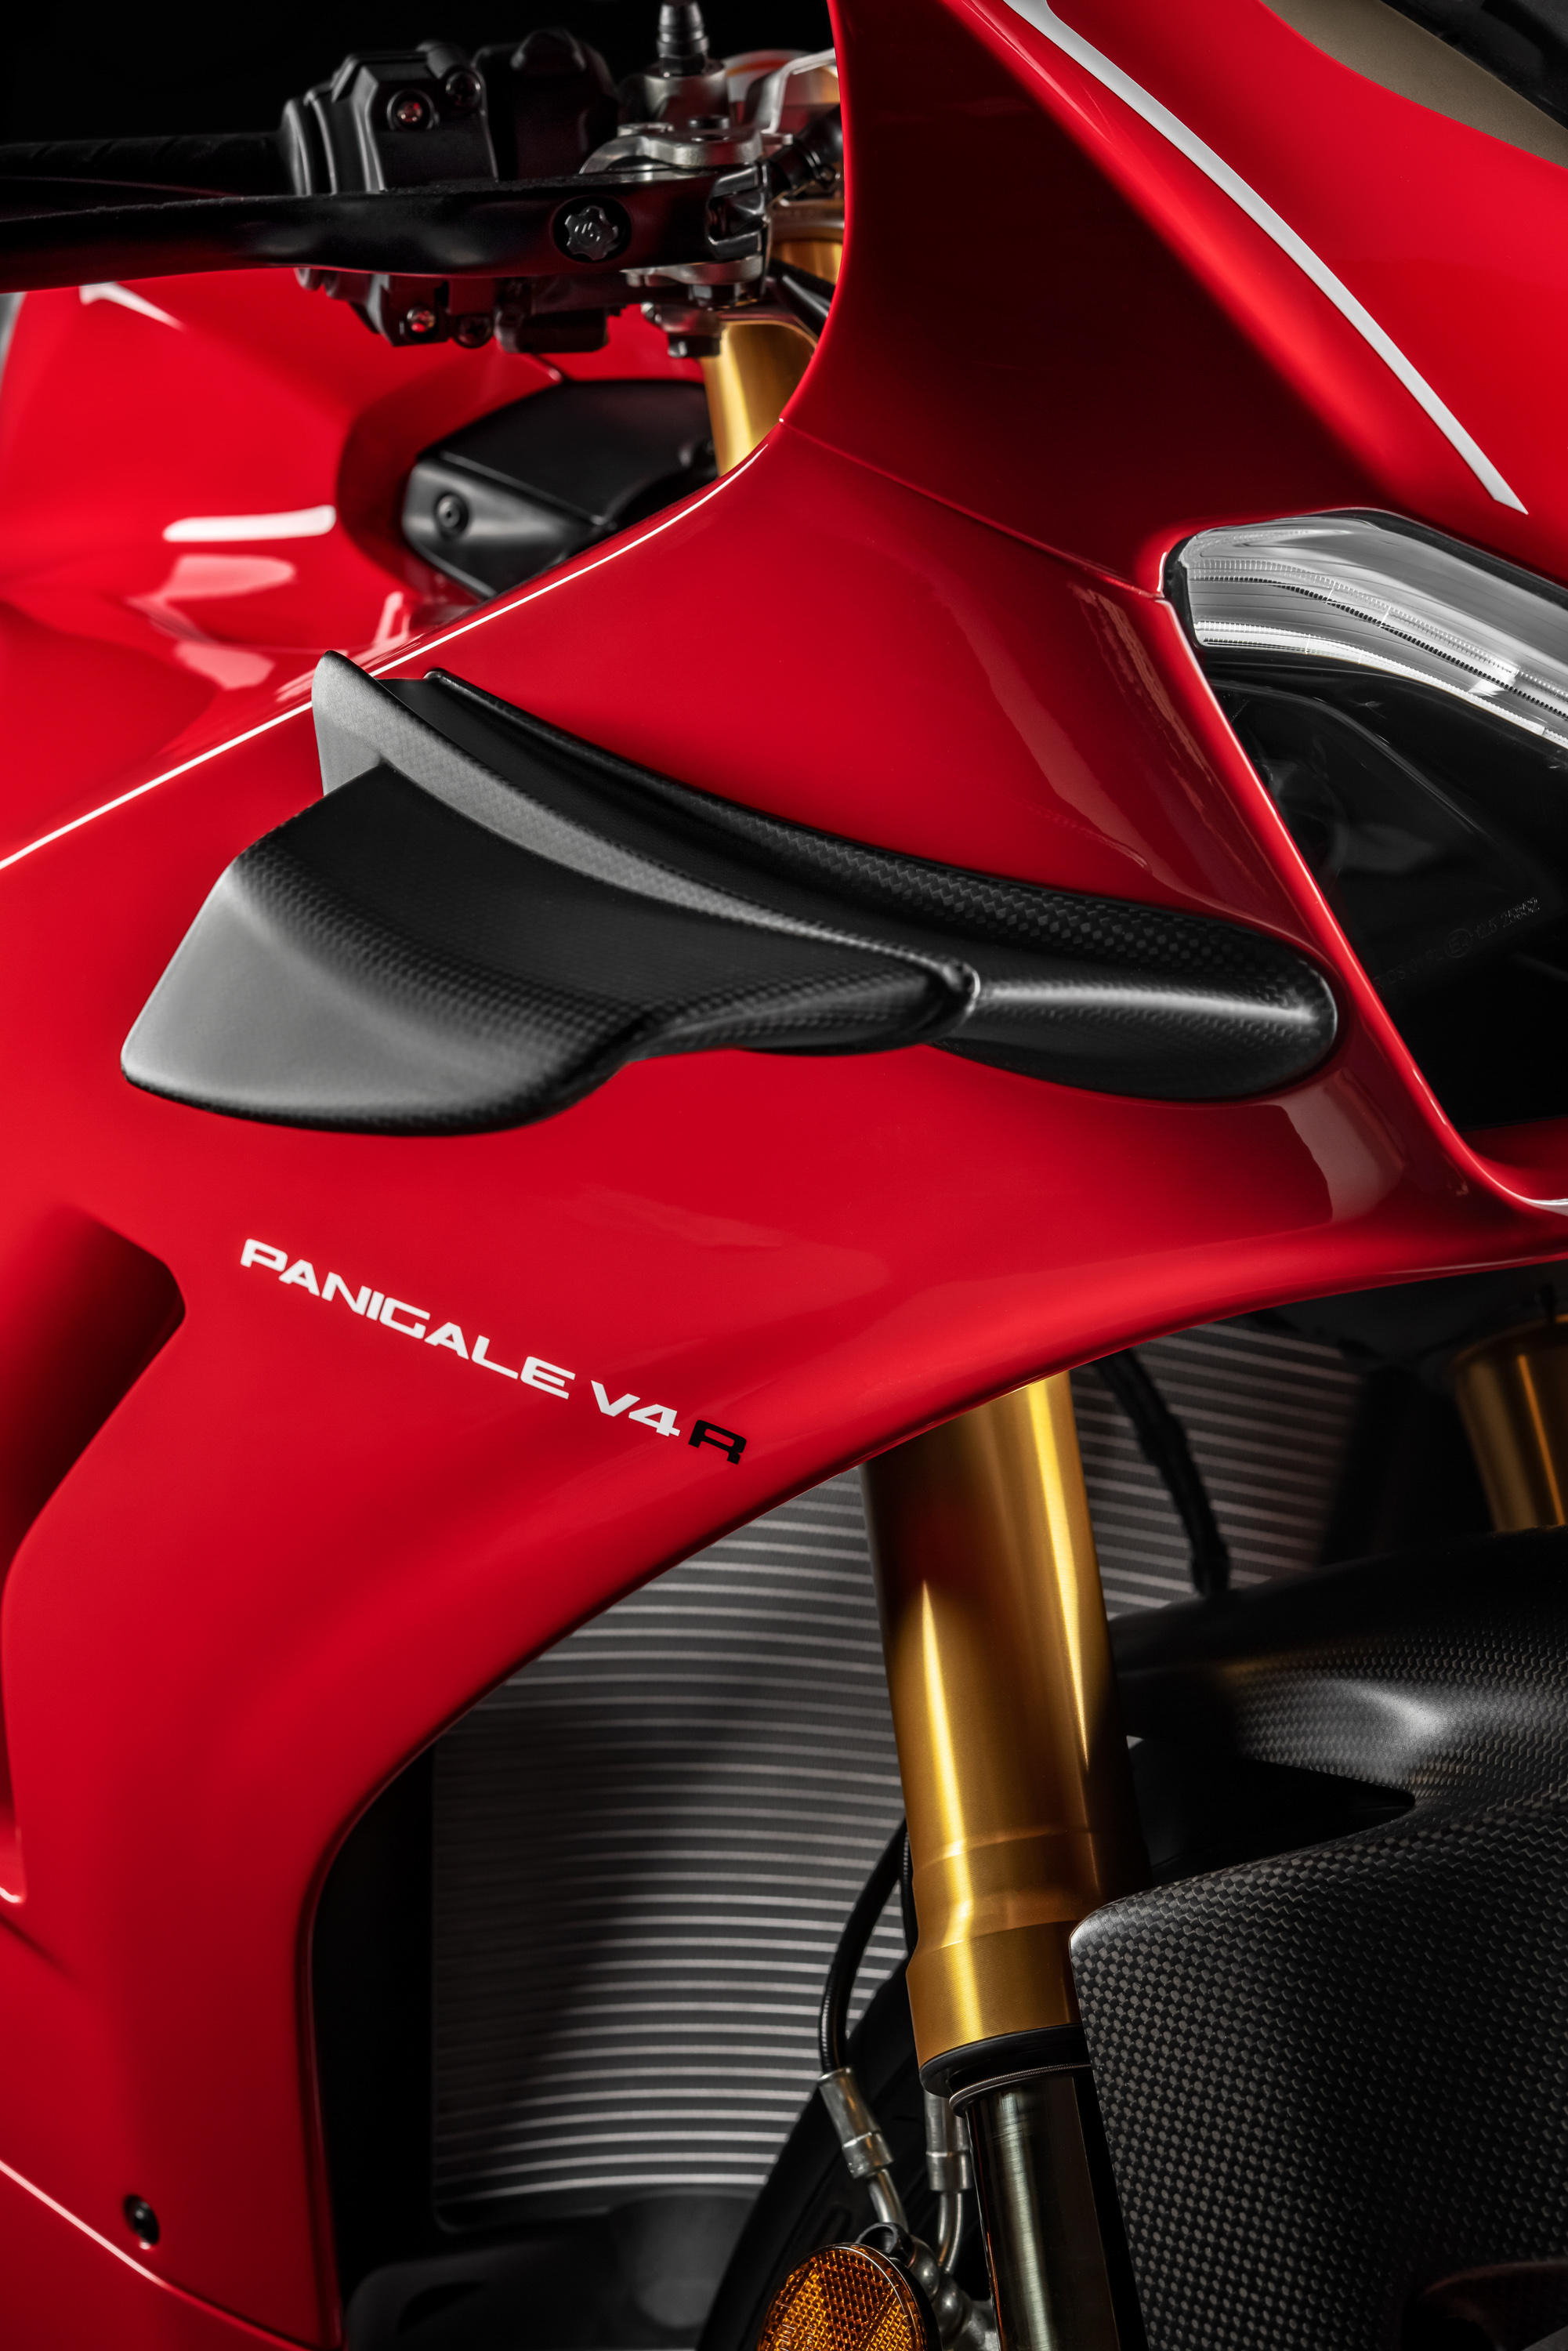 Ducati Announces Panigale V4 R Track Special Ahead Of 2018 Milan